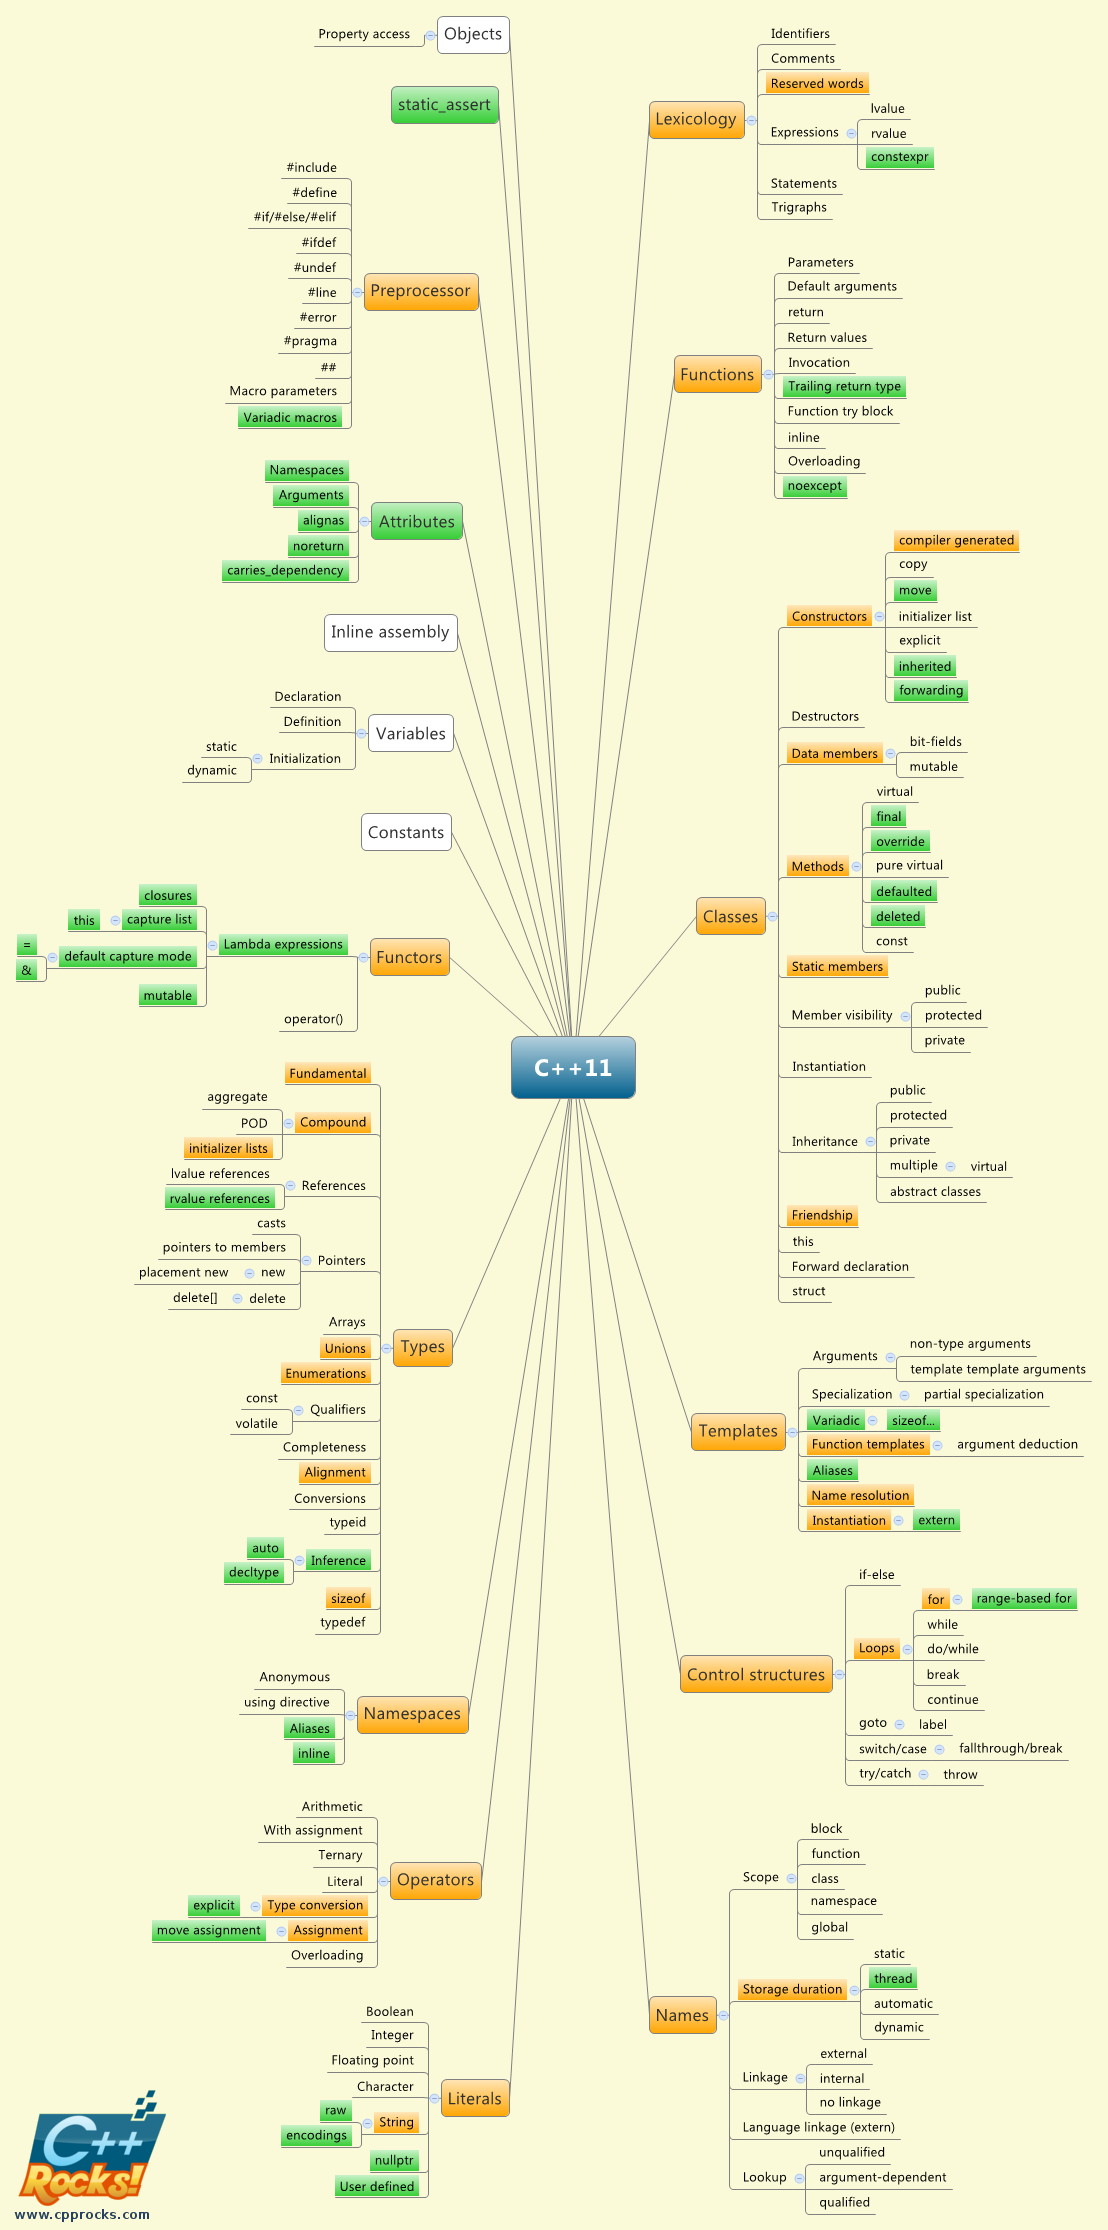 C++11: a visual summary of the additions and changes since C++03